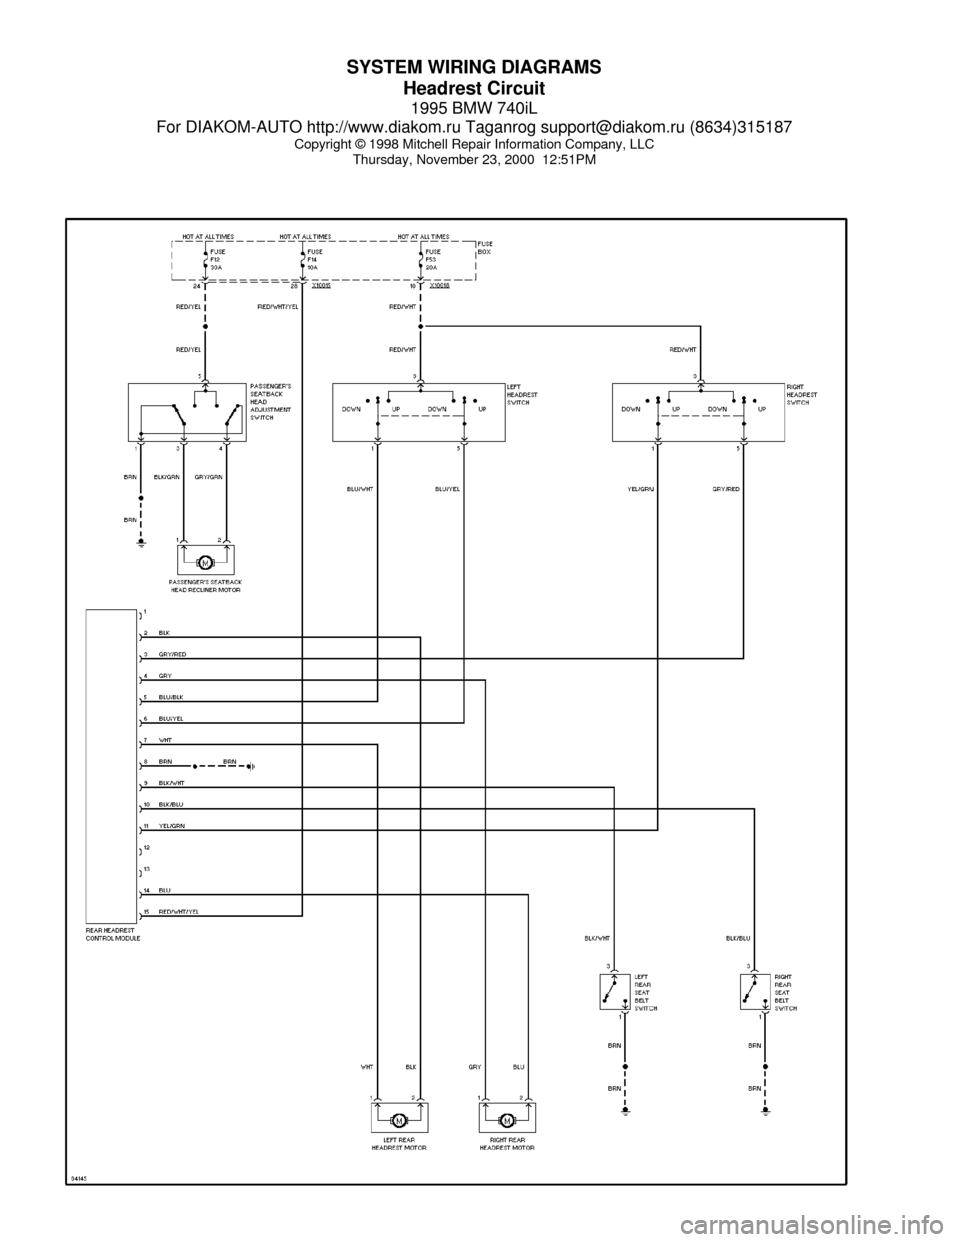 bmw 740il 1995 e38 system wiring diagrams bmw e38 audio wiring diagram bmw  e36 wiring diagram download